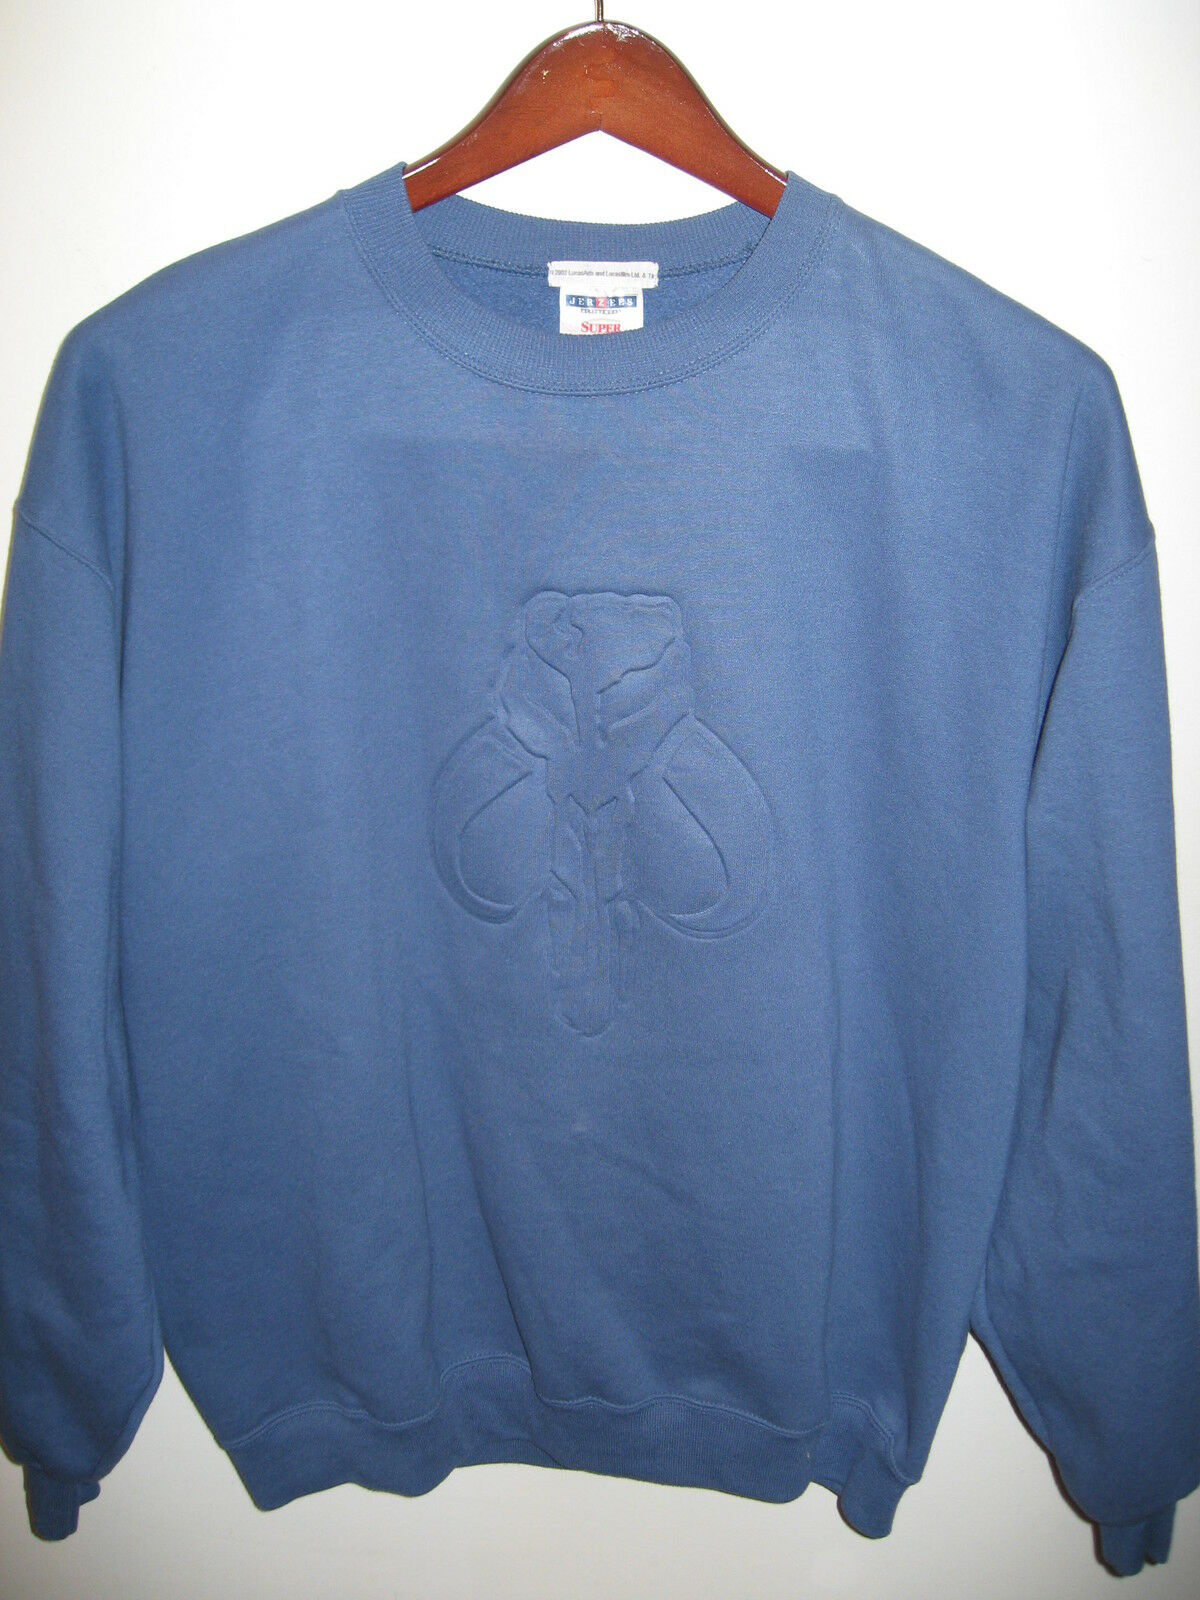 Star Wars 2002 LucasFilm LucasArt Lucas Movie Rare Vader 3D Stamp Sweatshirt L